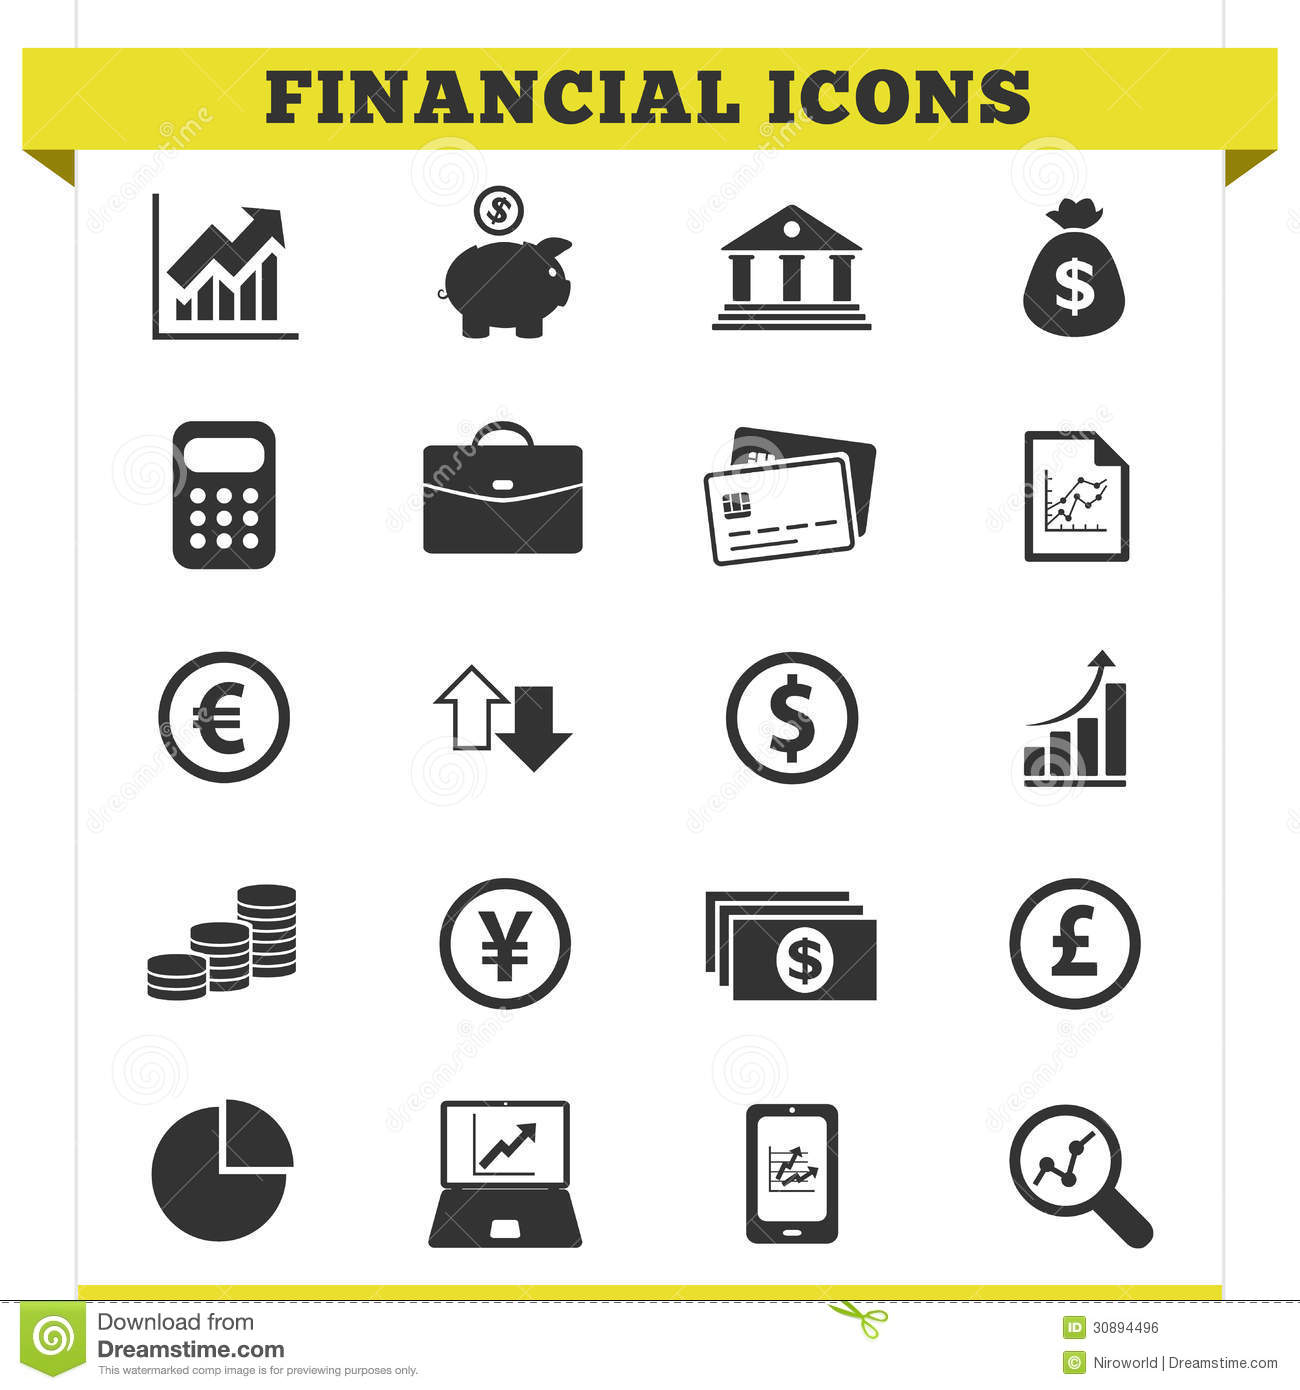 Free Vector Financial Icons